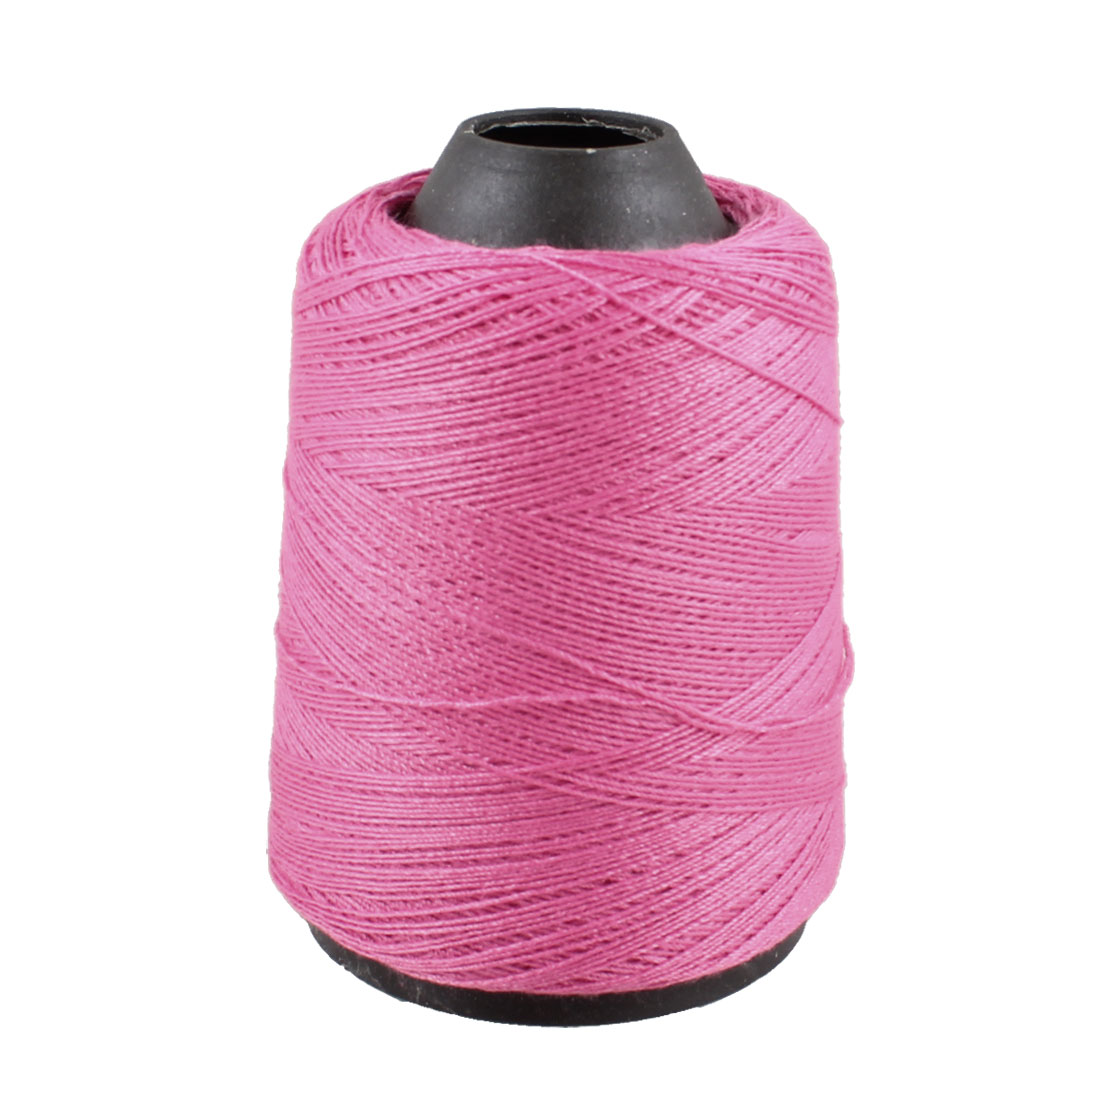 Seamstress Tailor Hand Embroidery Sewing Quilting Thread Spool Fuchsia